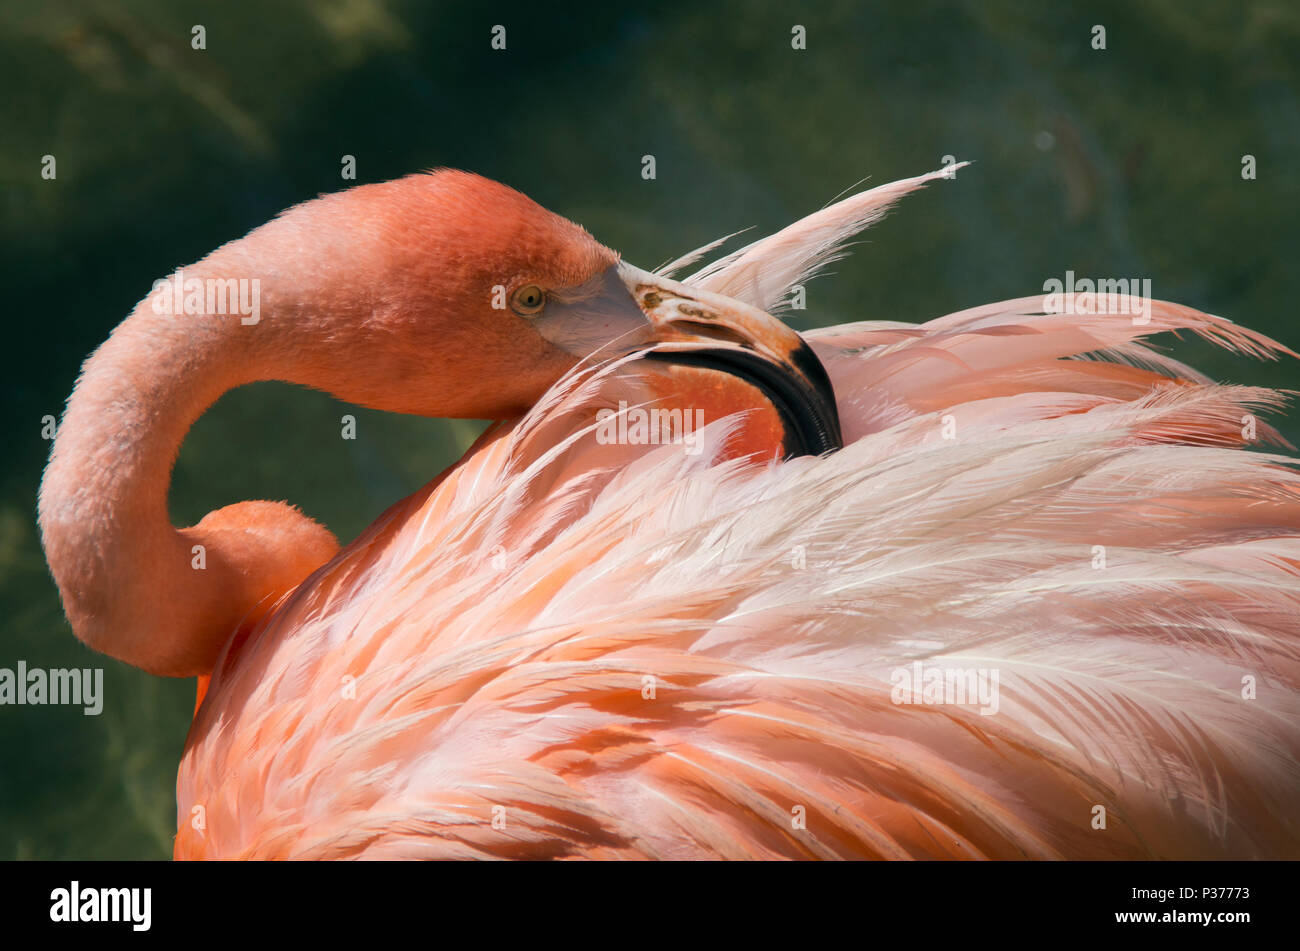 A Flamingo searches its feathers for parasites in a bird park located in Scotland Neck,North Carolina - Stock Image